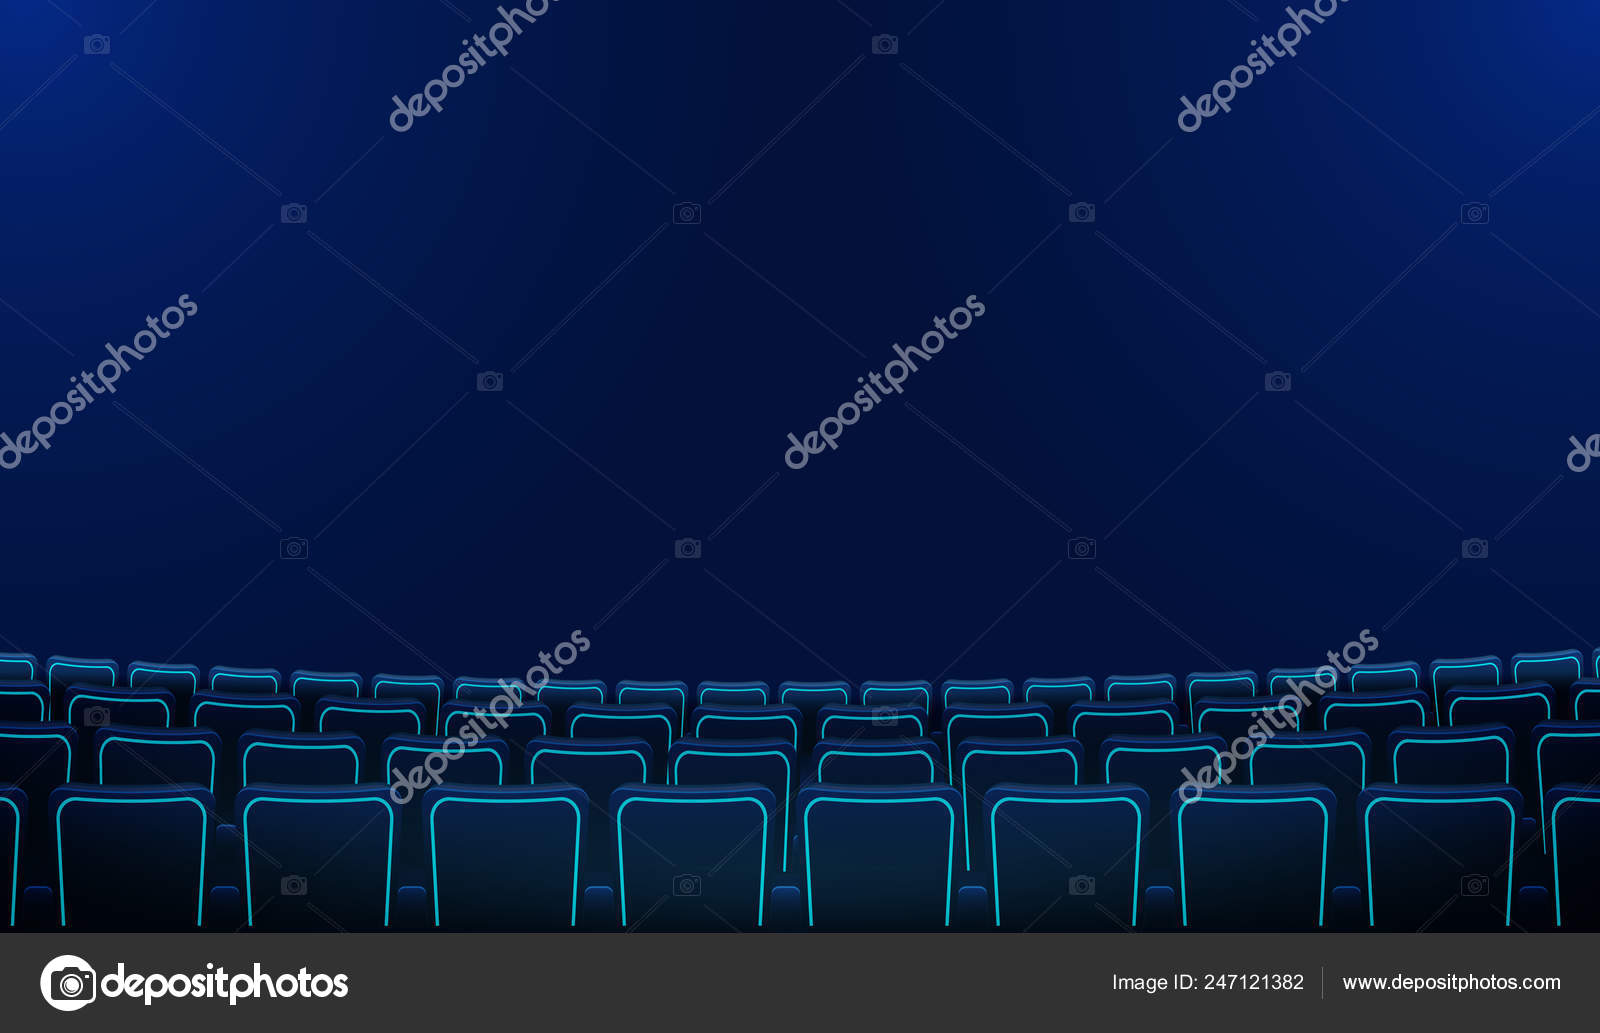 Realistic Rows Blue Chairs Cinema Movie Theater Seats Darkness Cinema Stock Vector C Pilvitus 247121382